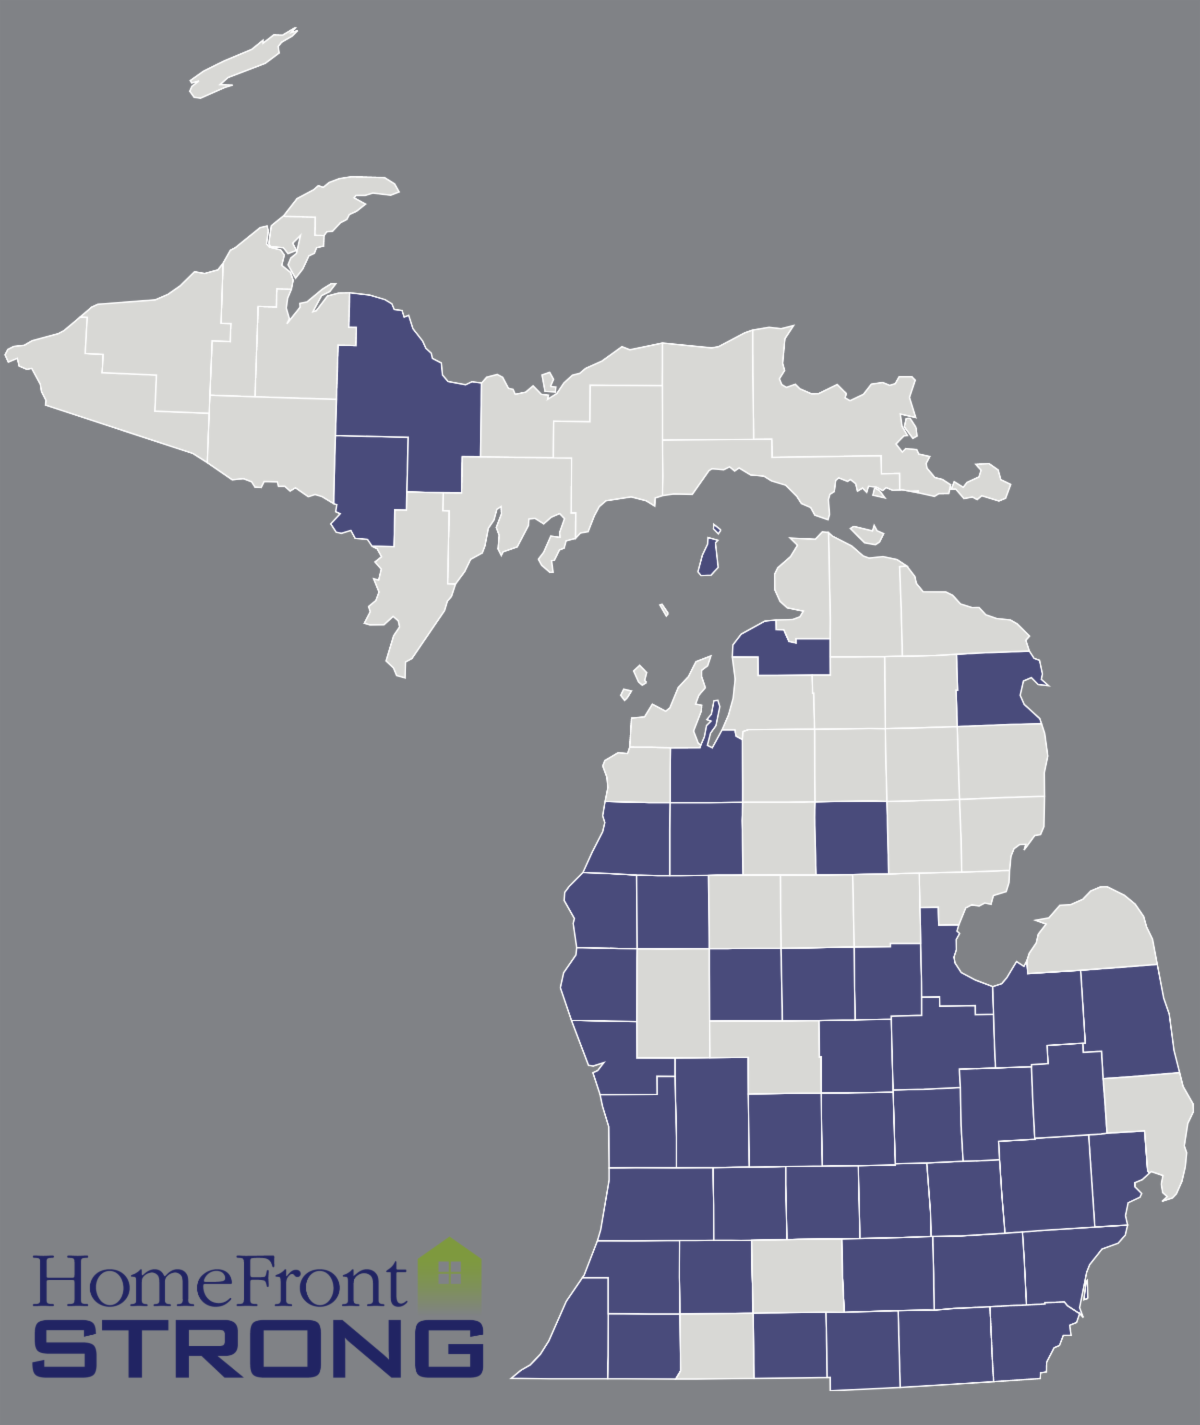 Image of Michigan with cities shaded a darker blue color